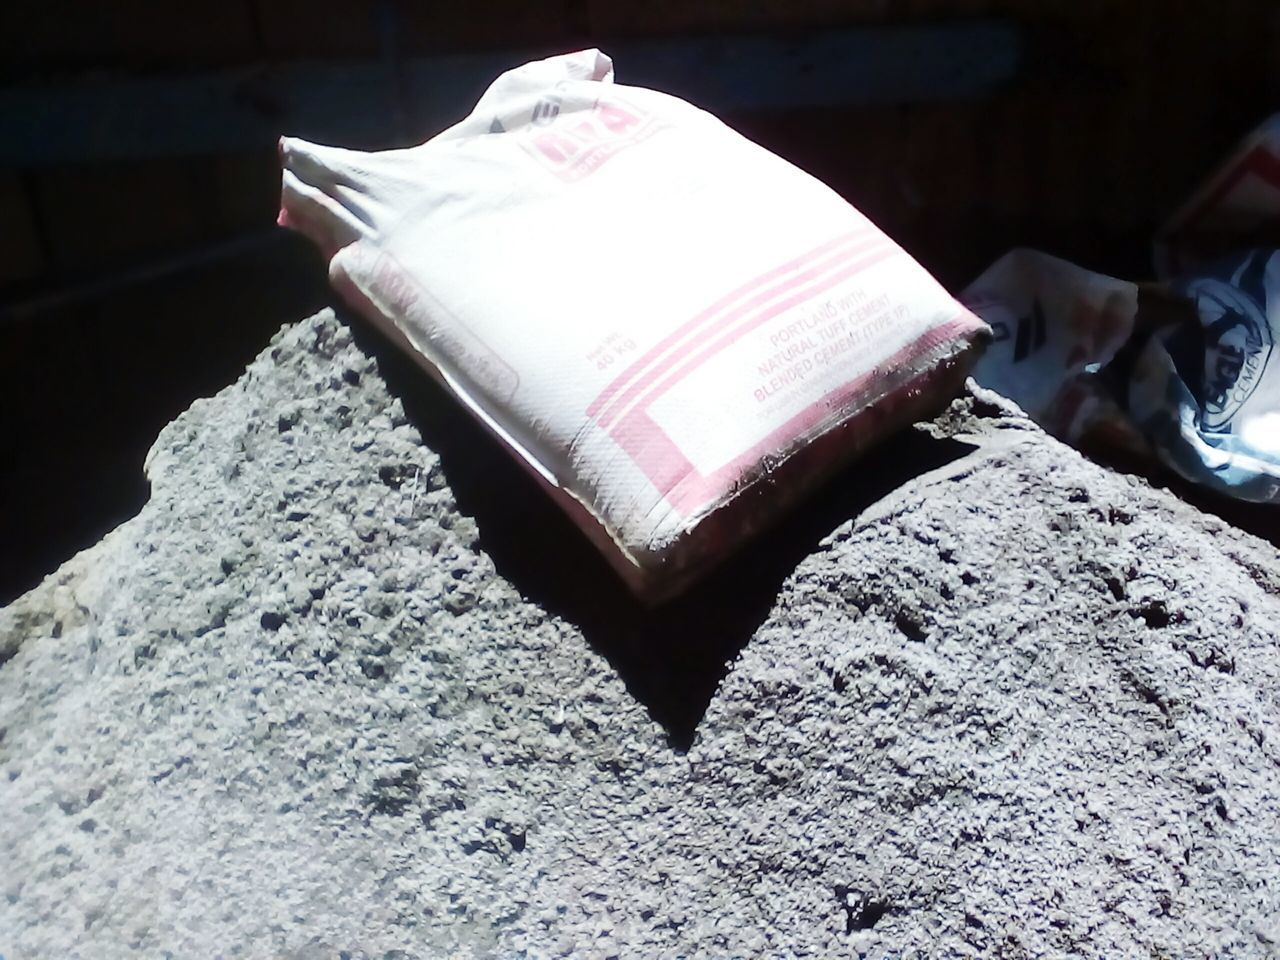 a bag of cement.